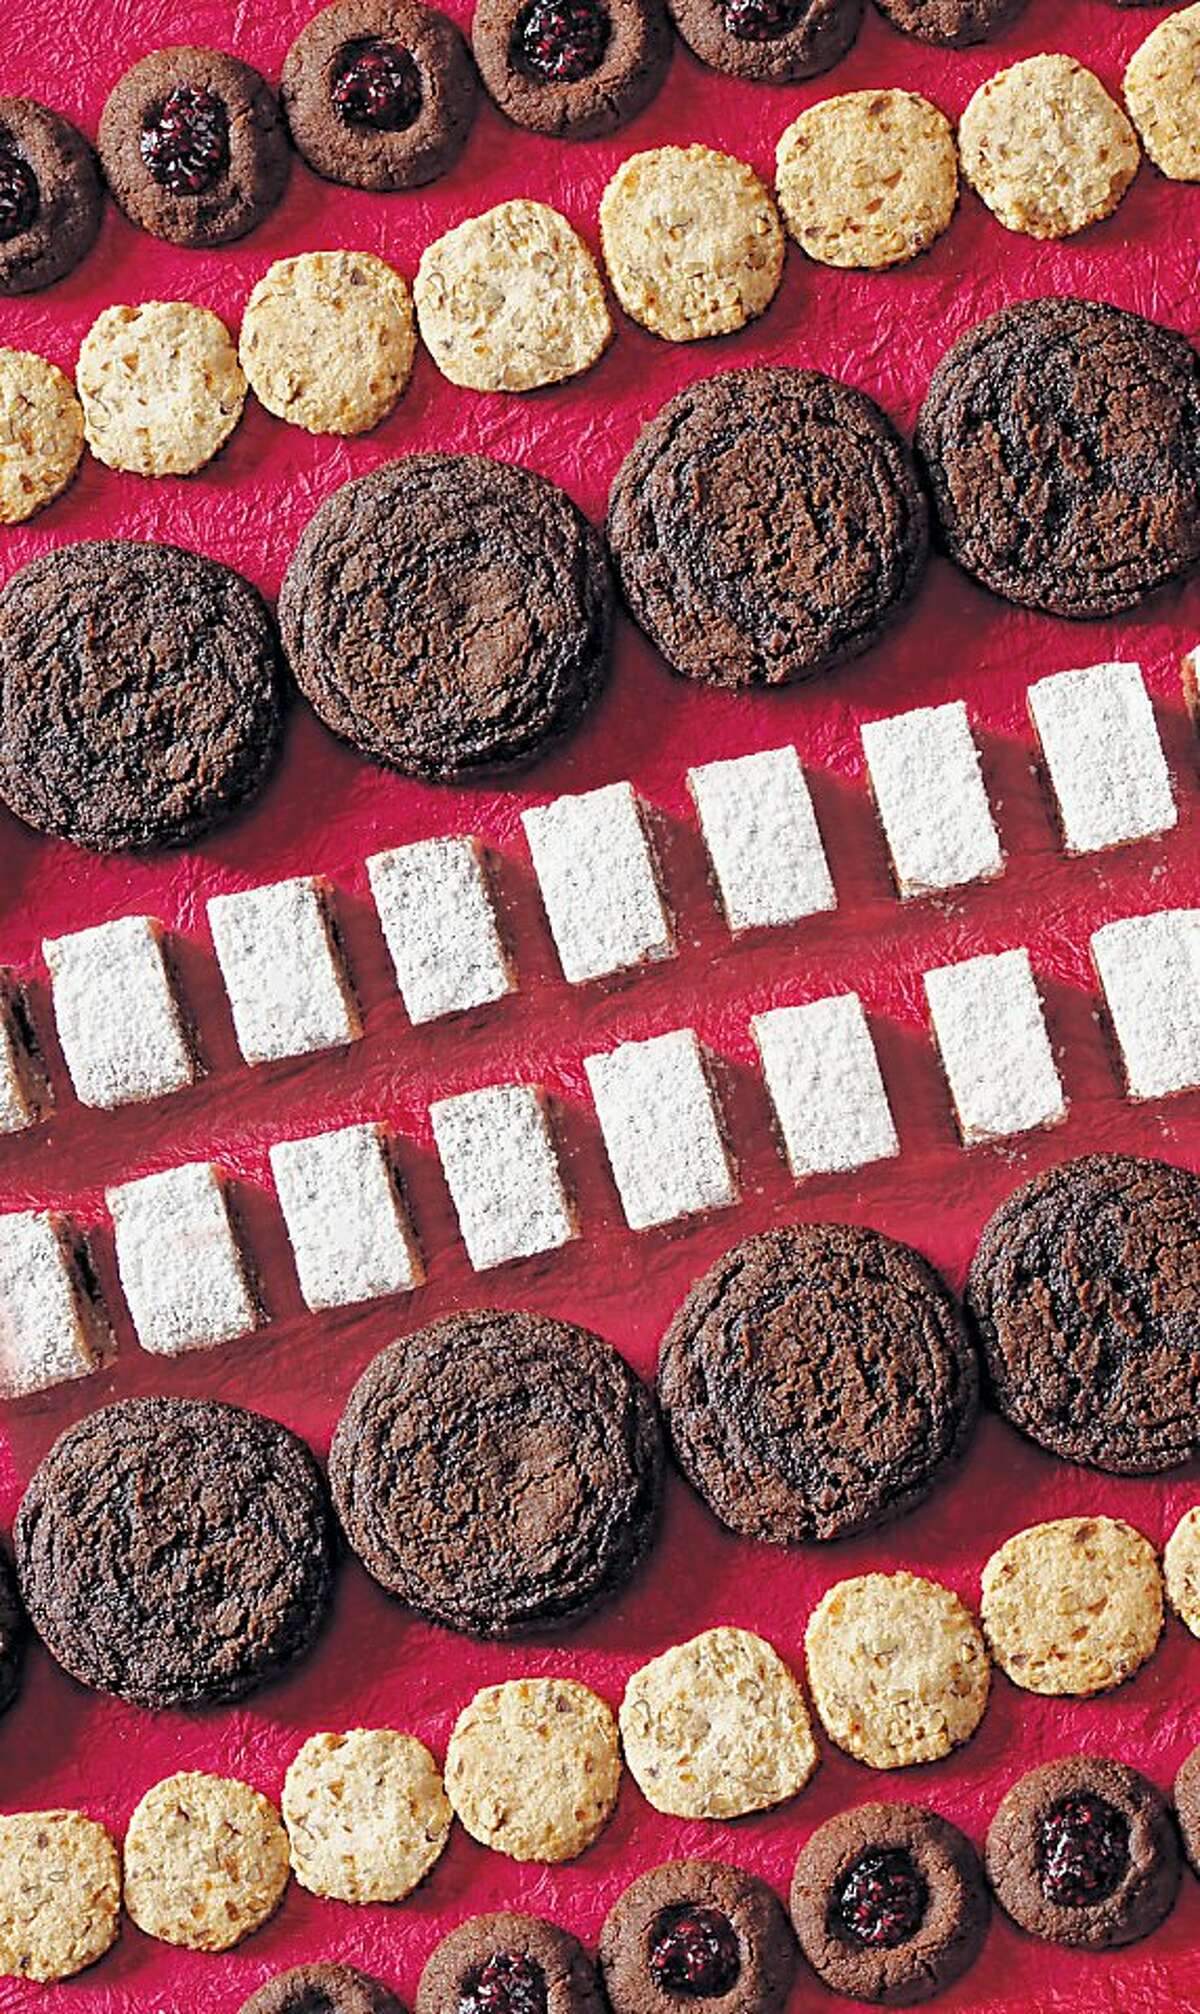 An easy line-up for any holiday baker, whether novice or expert. From top: Chocolate Almond Thumbprints, Spiced Pecan Shortbread, Chocolate Gingersnaps With Chocolate Ganache, Brown Butter Dried Fruit Bars.